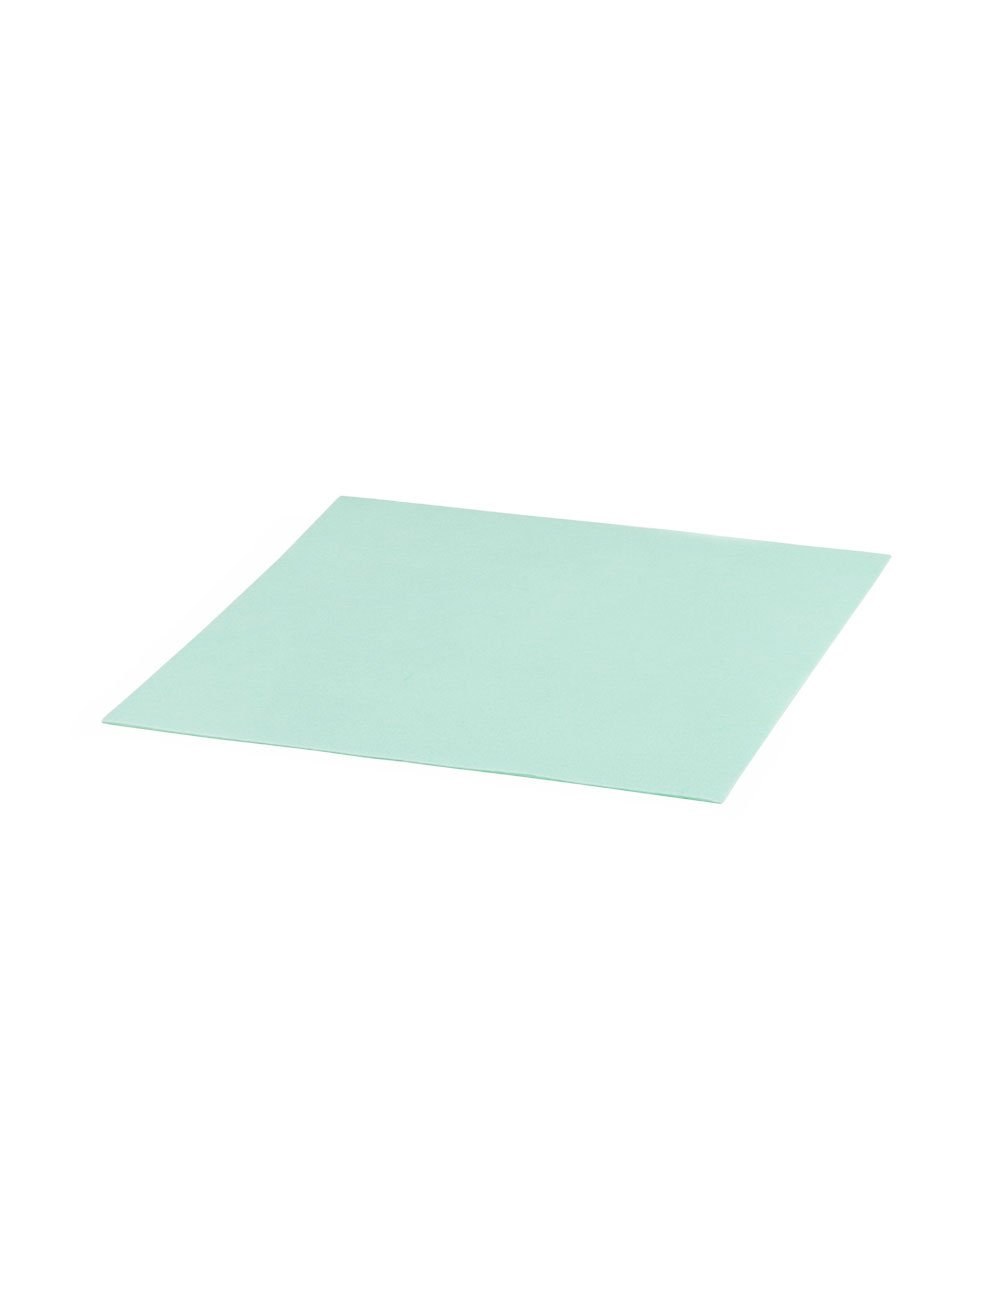 12' X 12' Stiff Felt - Mint, 1 Pc The Felt Store